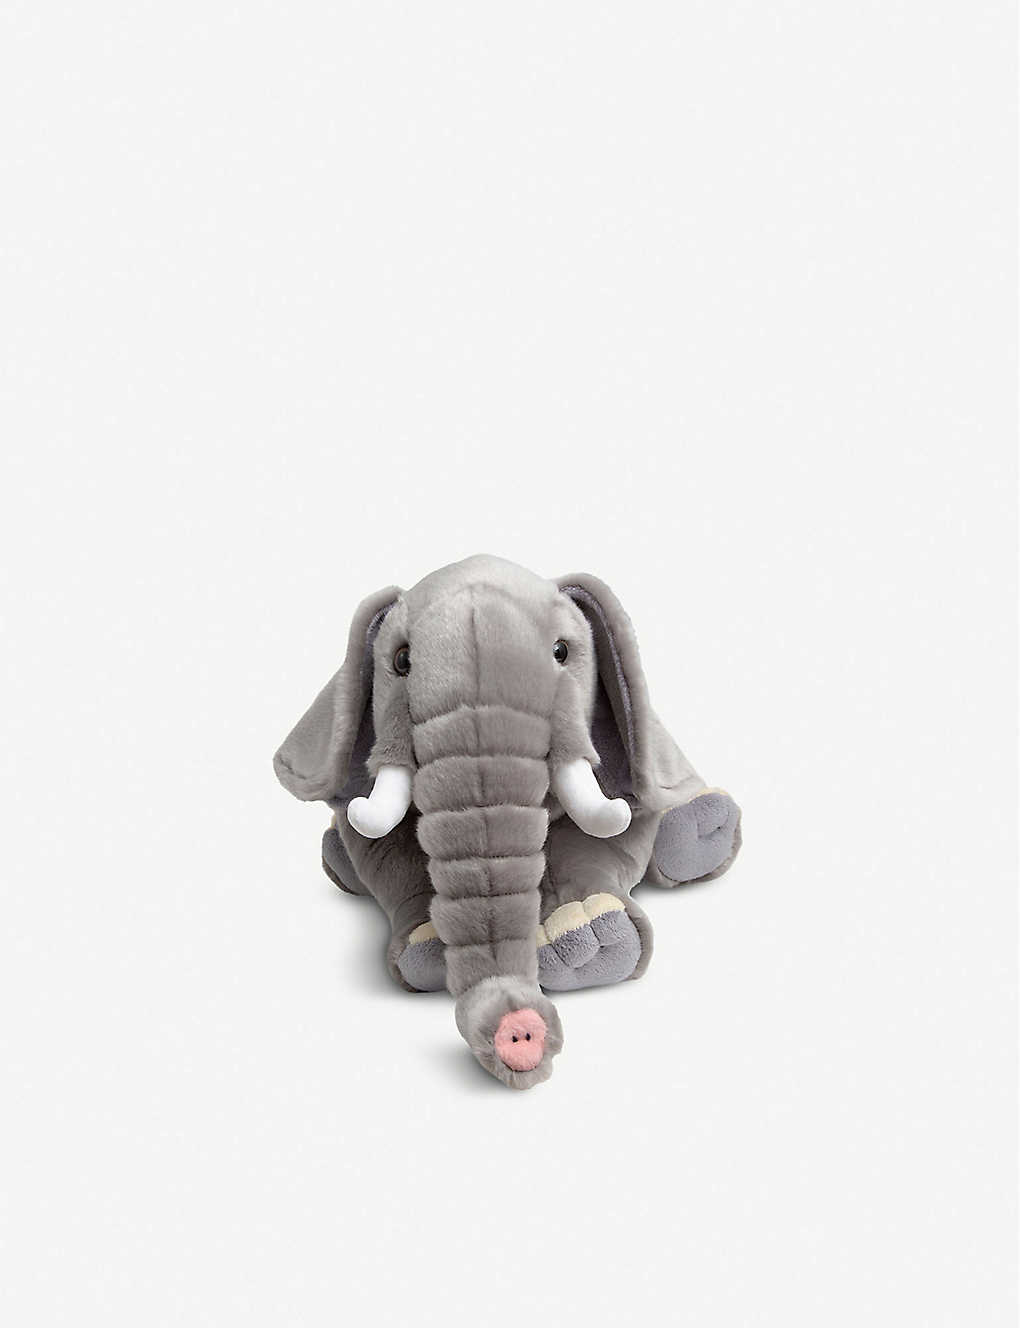 FAO PLUSH: Elephant plush toy 45.72cm